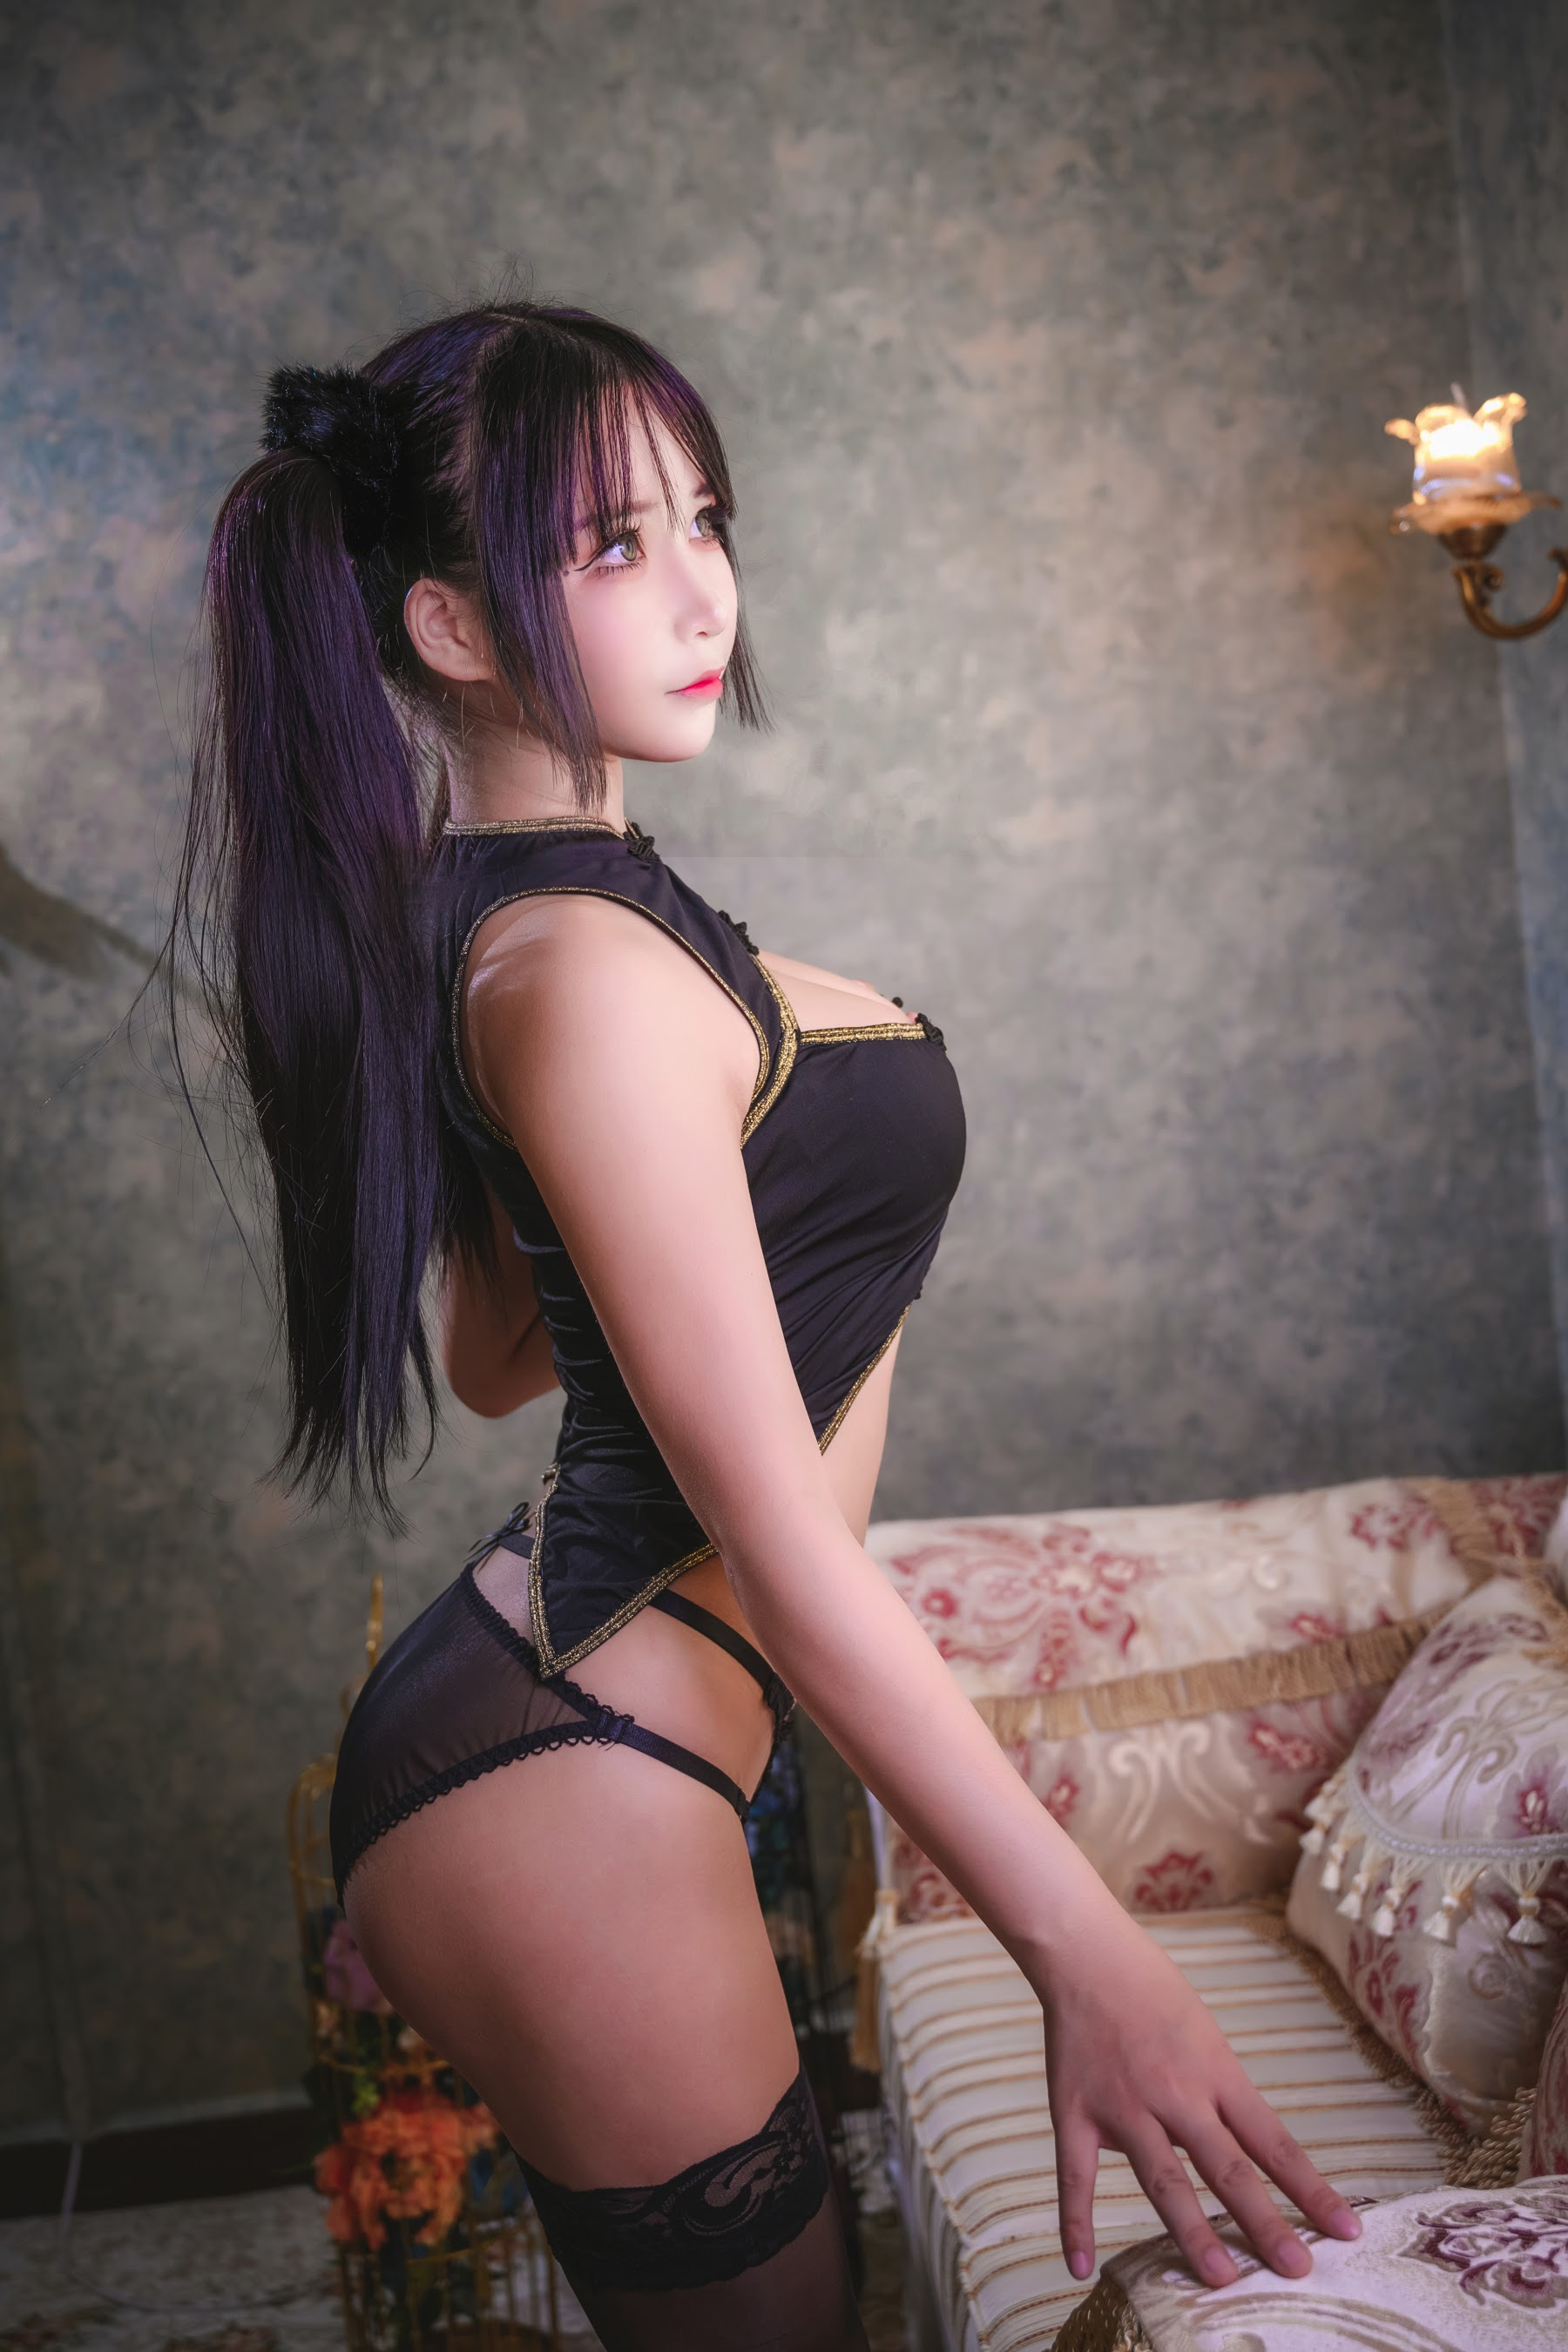 Sexy Chinese beauty with twin tails012